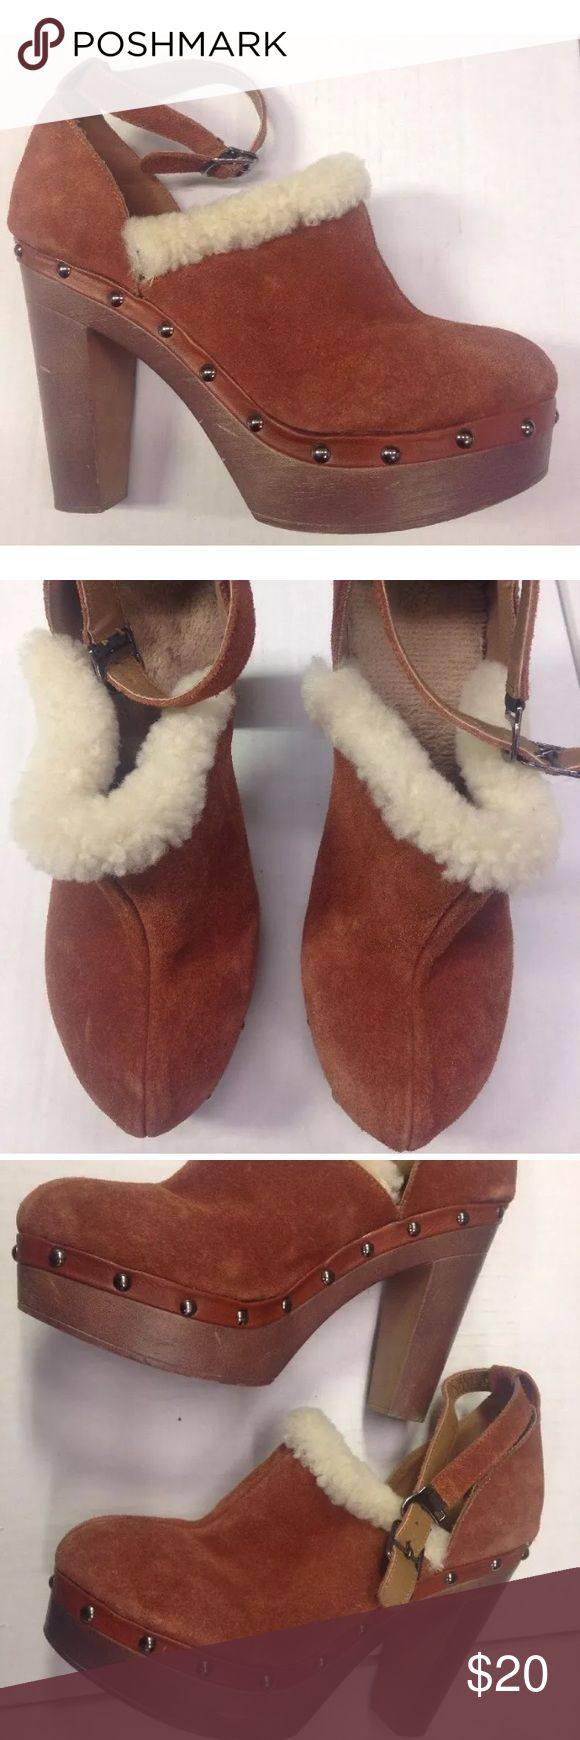 Mule clog HEEL FAUX fur suede shoes CUTE PAIR OF BROWN SUEDE HIGH HEEL MULES WITH FAUX FUR TRIM  WOMEN SIZE 38 EUR  PLASTIC FAUX WOOD SOLE ANKLE STRAP  EXCELLENT CONDITION, LIGHTLY USED, CLEAN  SEE PICTURES FOR DETAILS Shoes Mules & Clogs